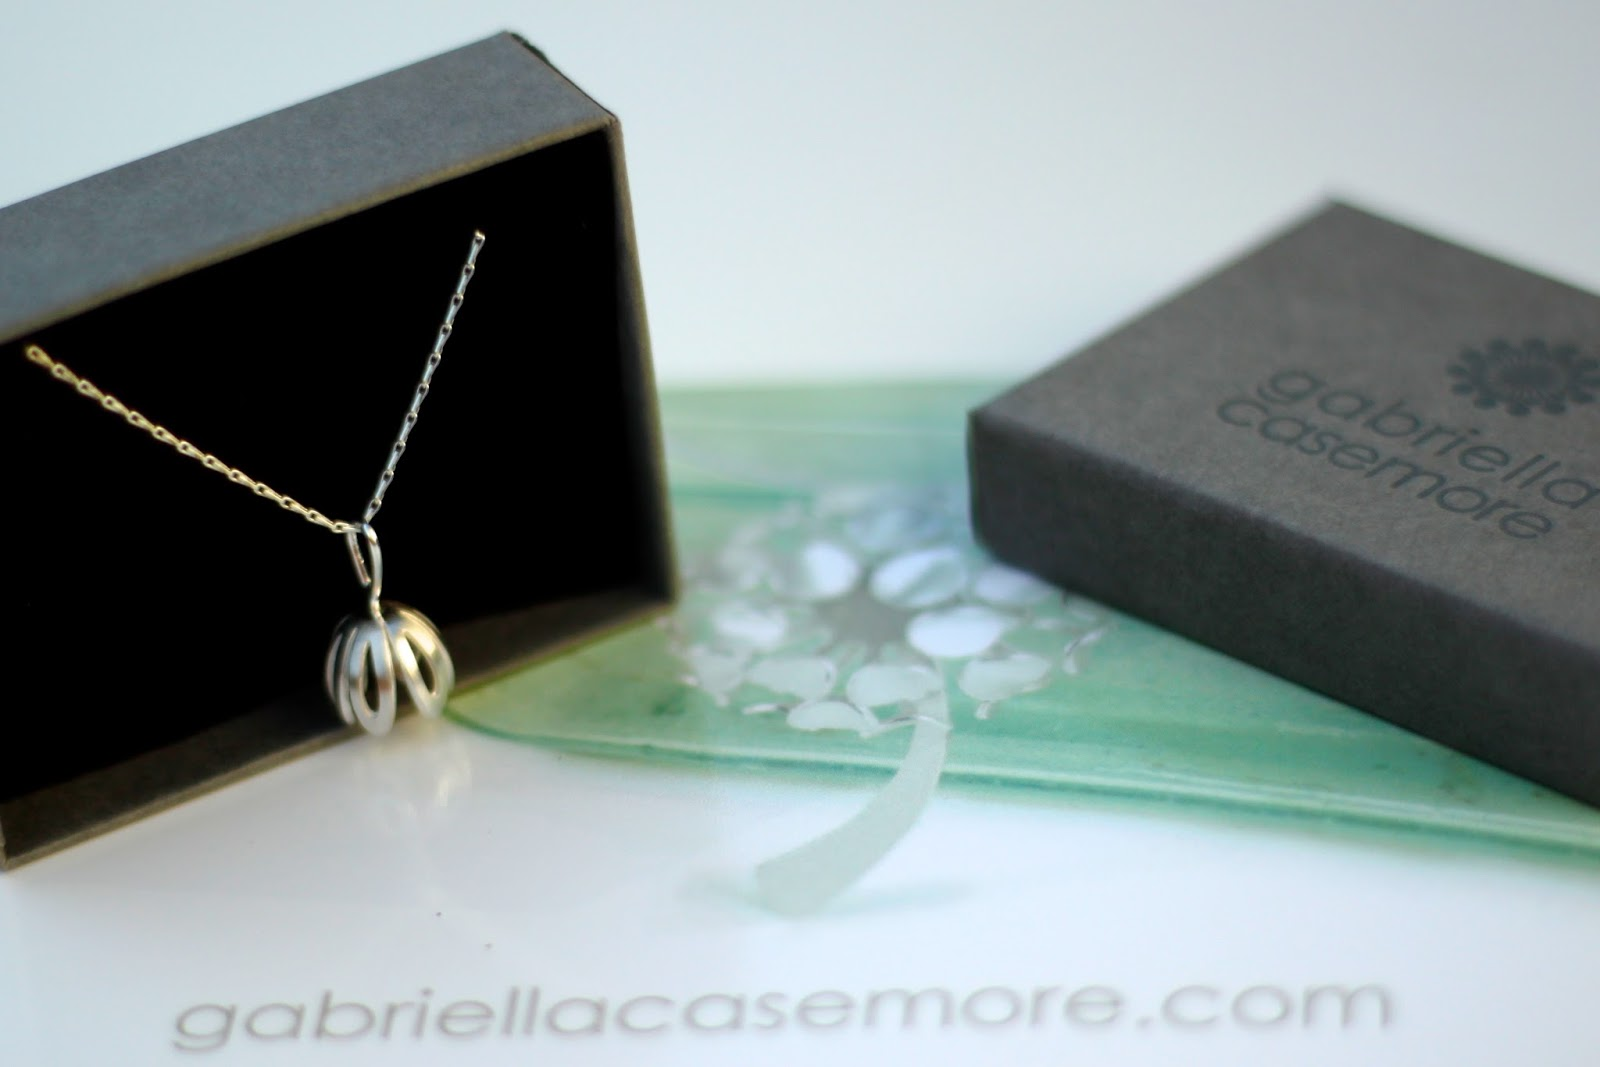 Crocus Necklace in a Box